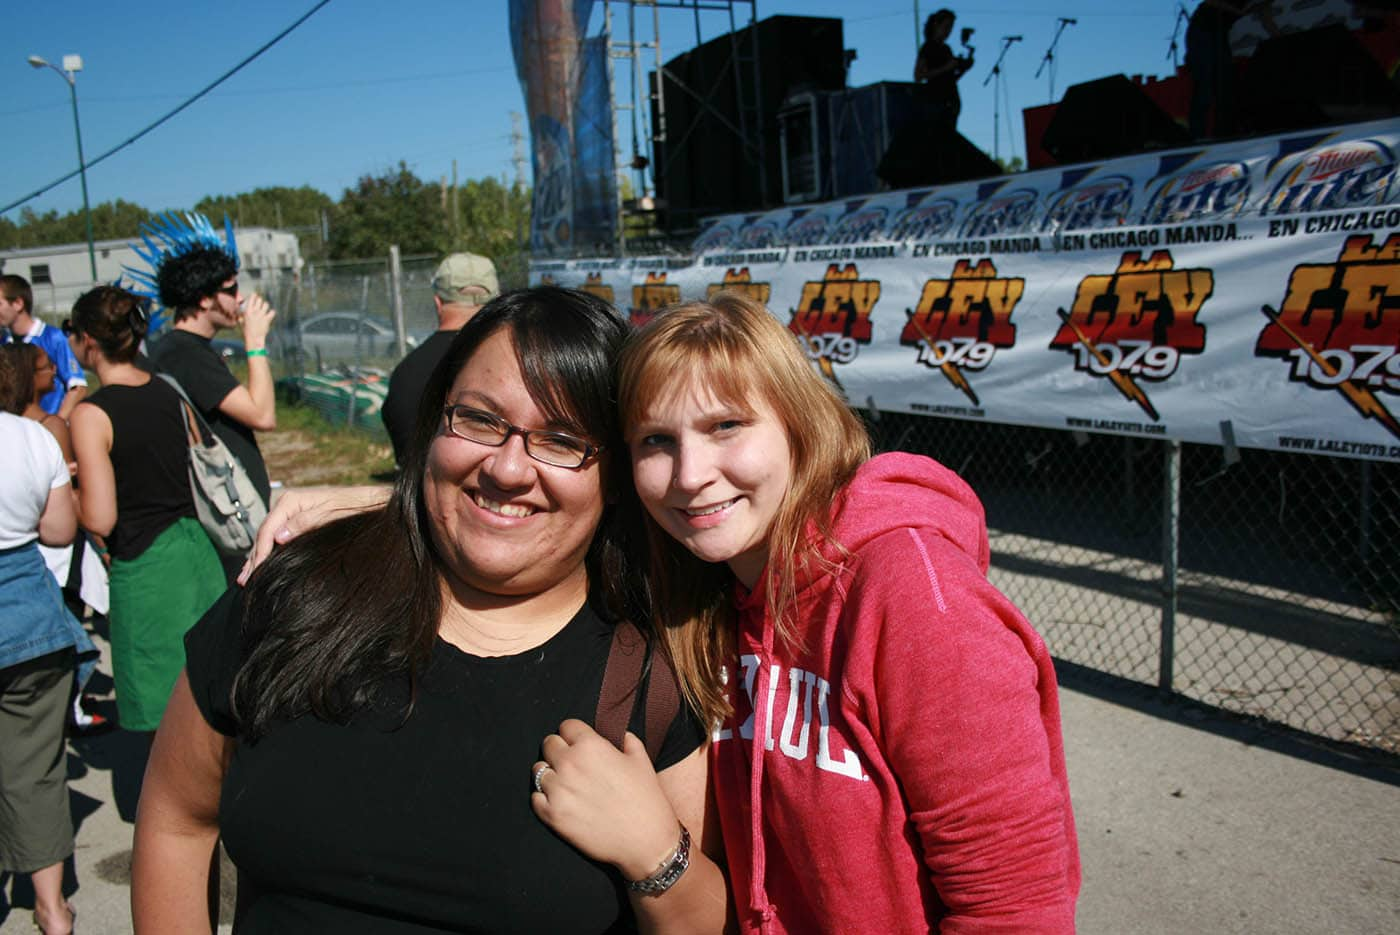 """Nadia and I at the La Costeña """"Feel the Heat"""" Jalapeño Eating Challenge - jalapeno eating contest in Chicago."""